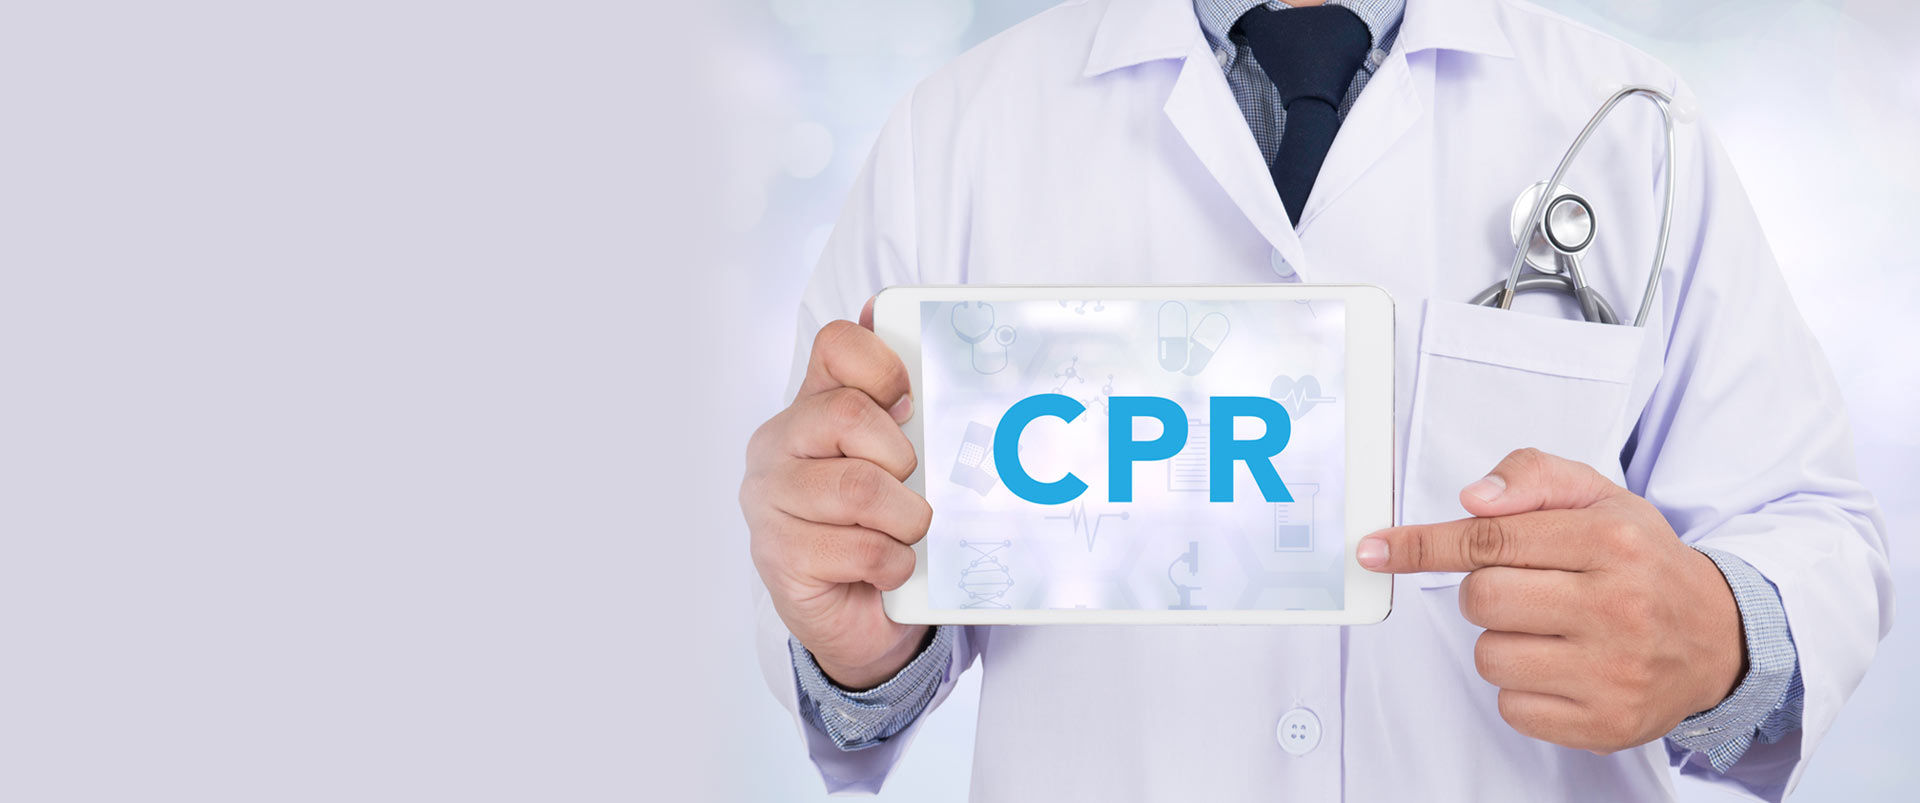 Learn About the CPR Course